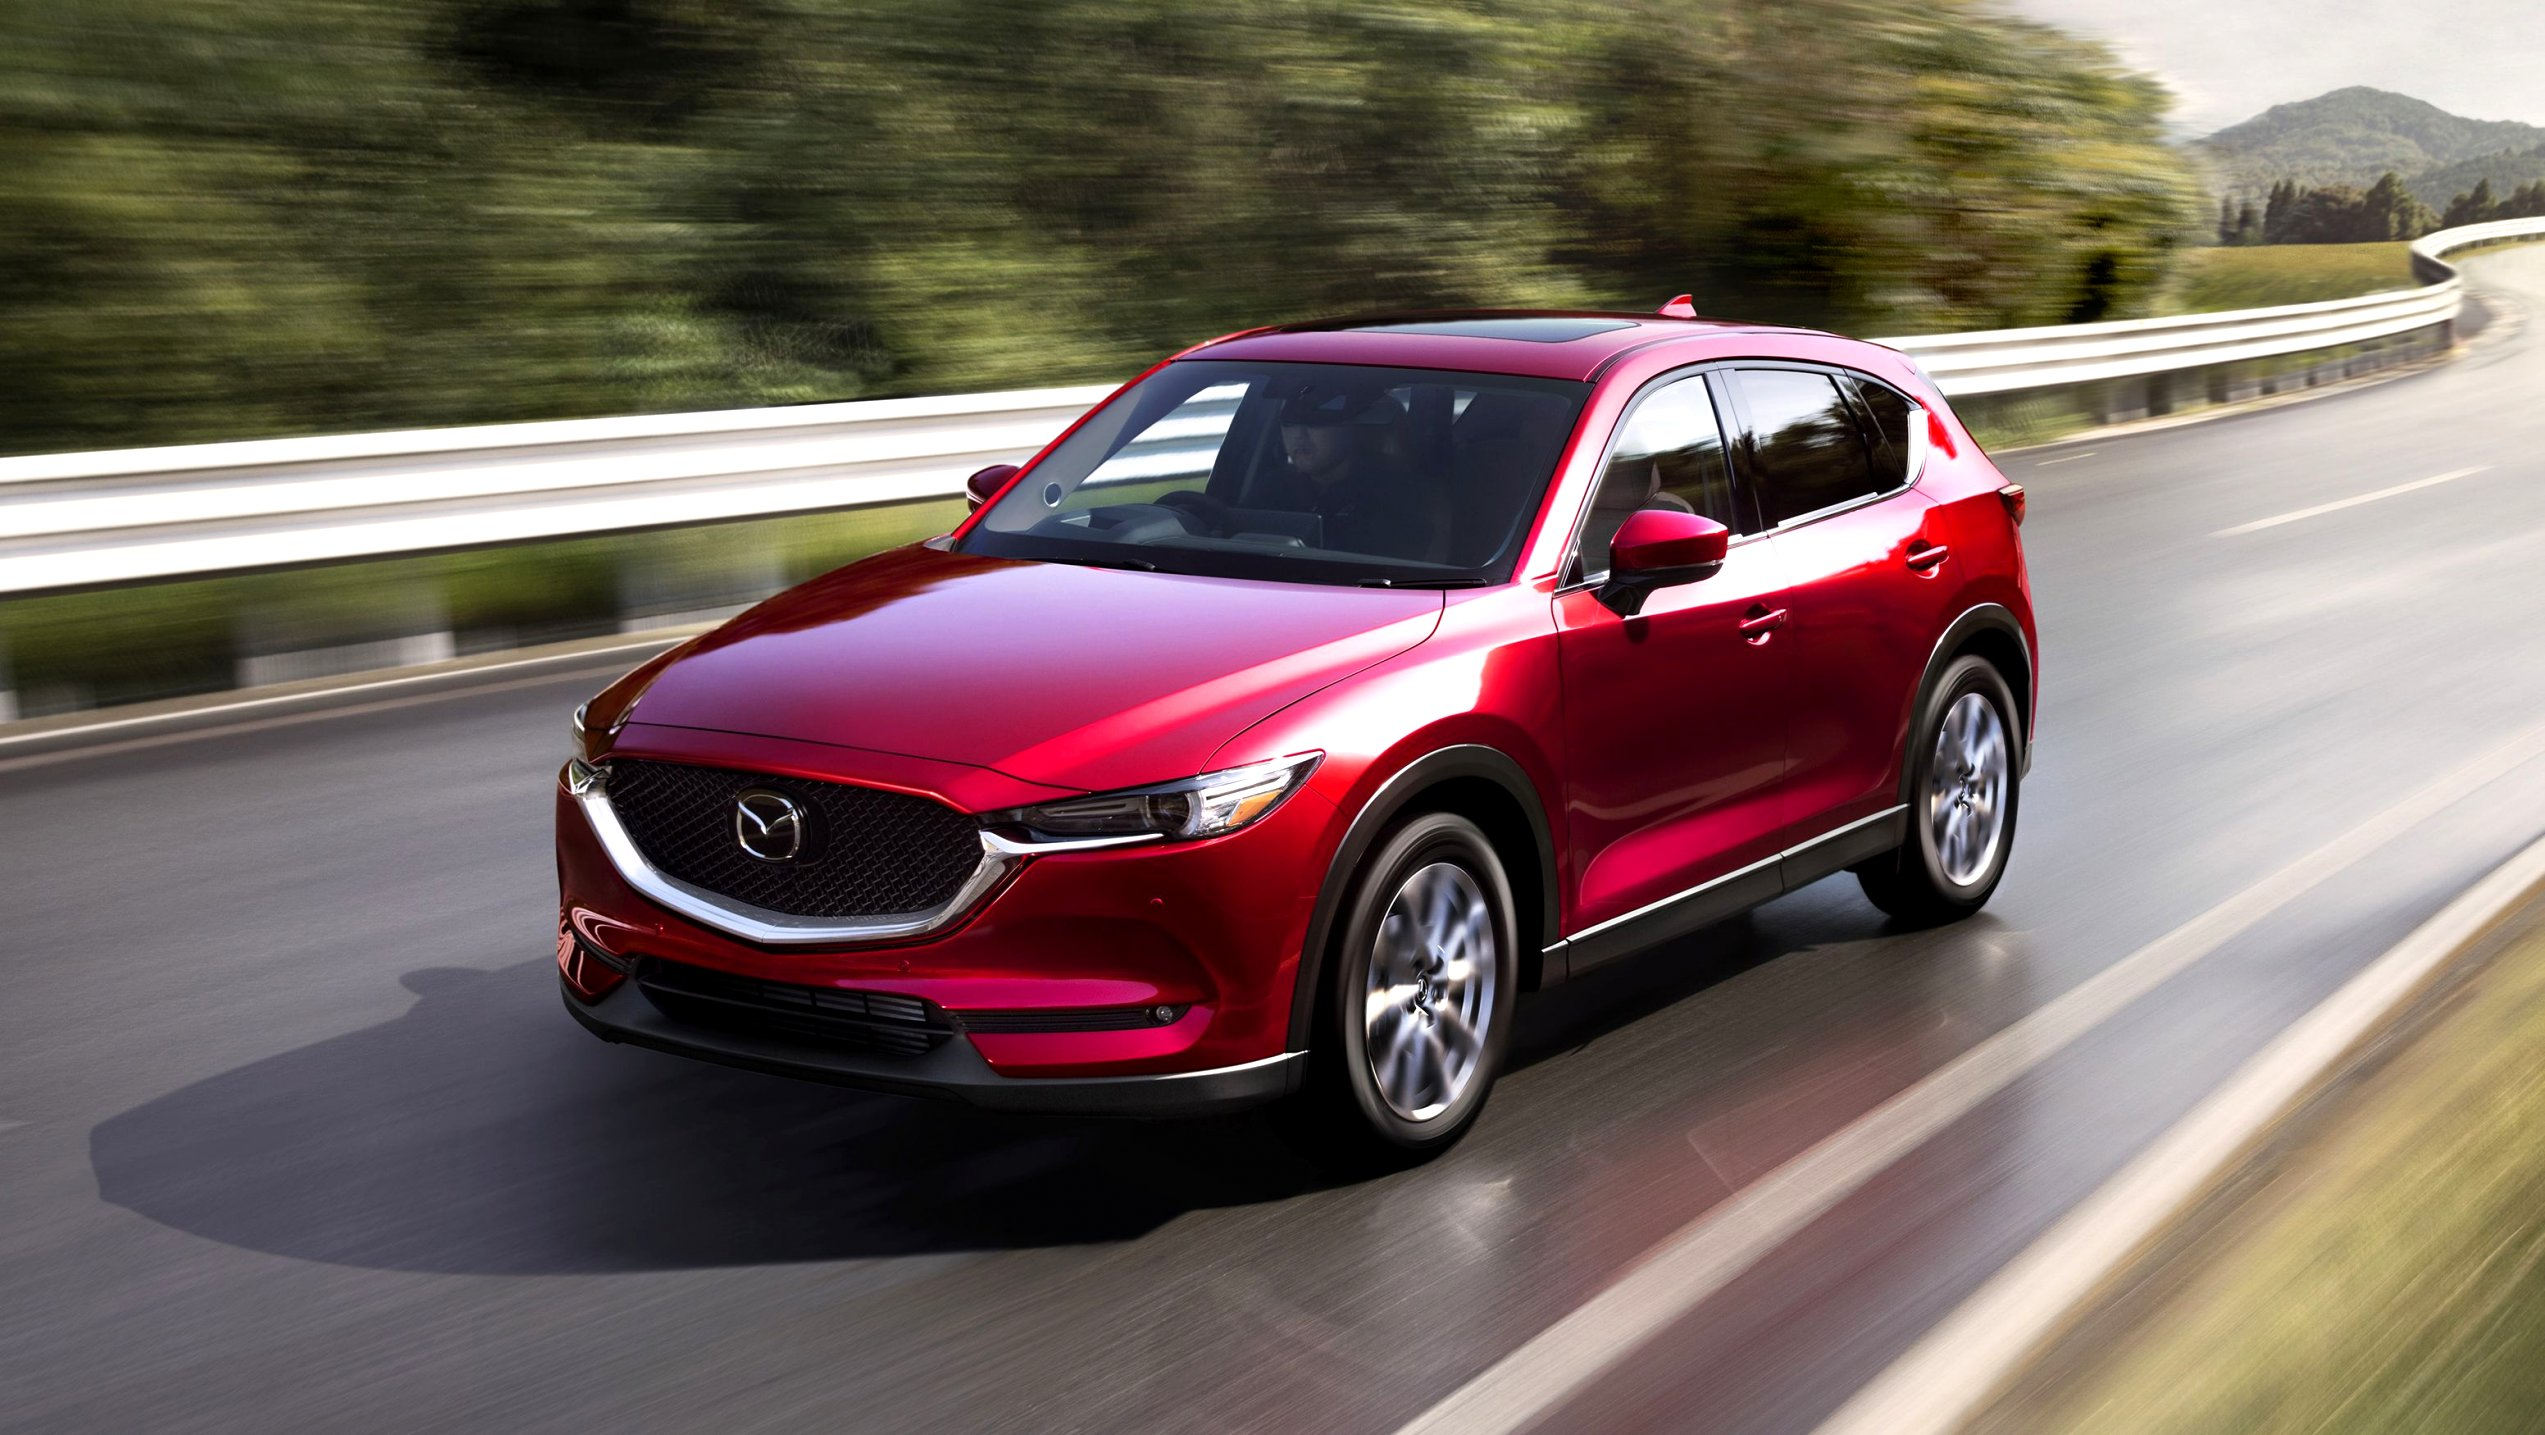 2020 mazda cx 5 zero to 60 Research New